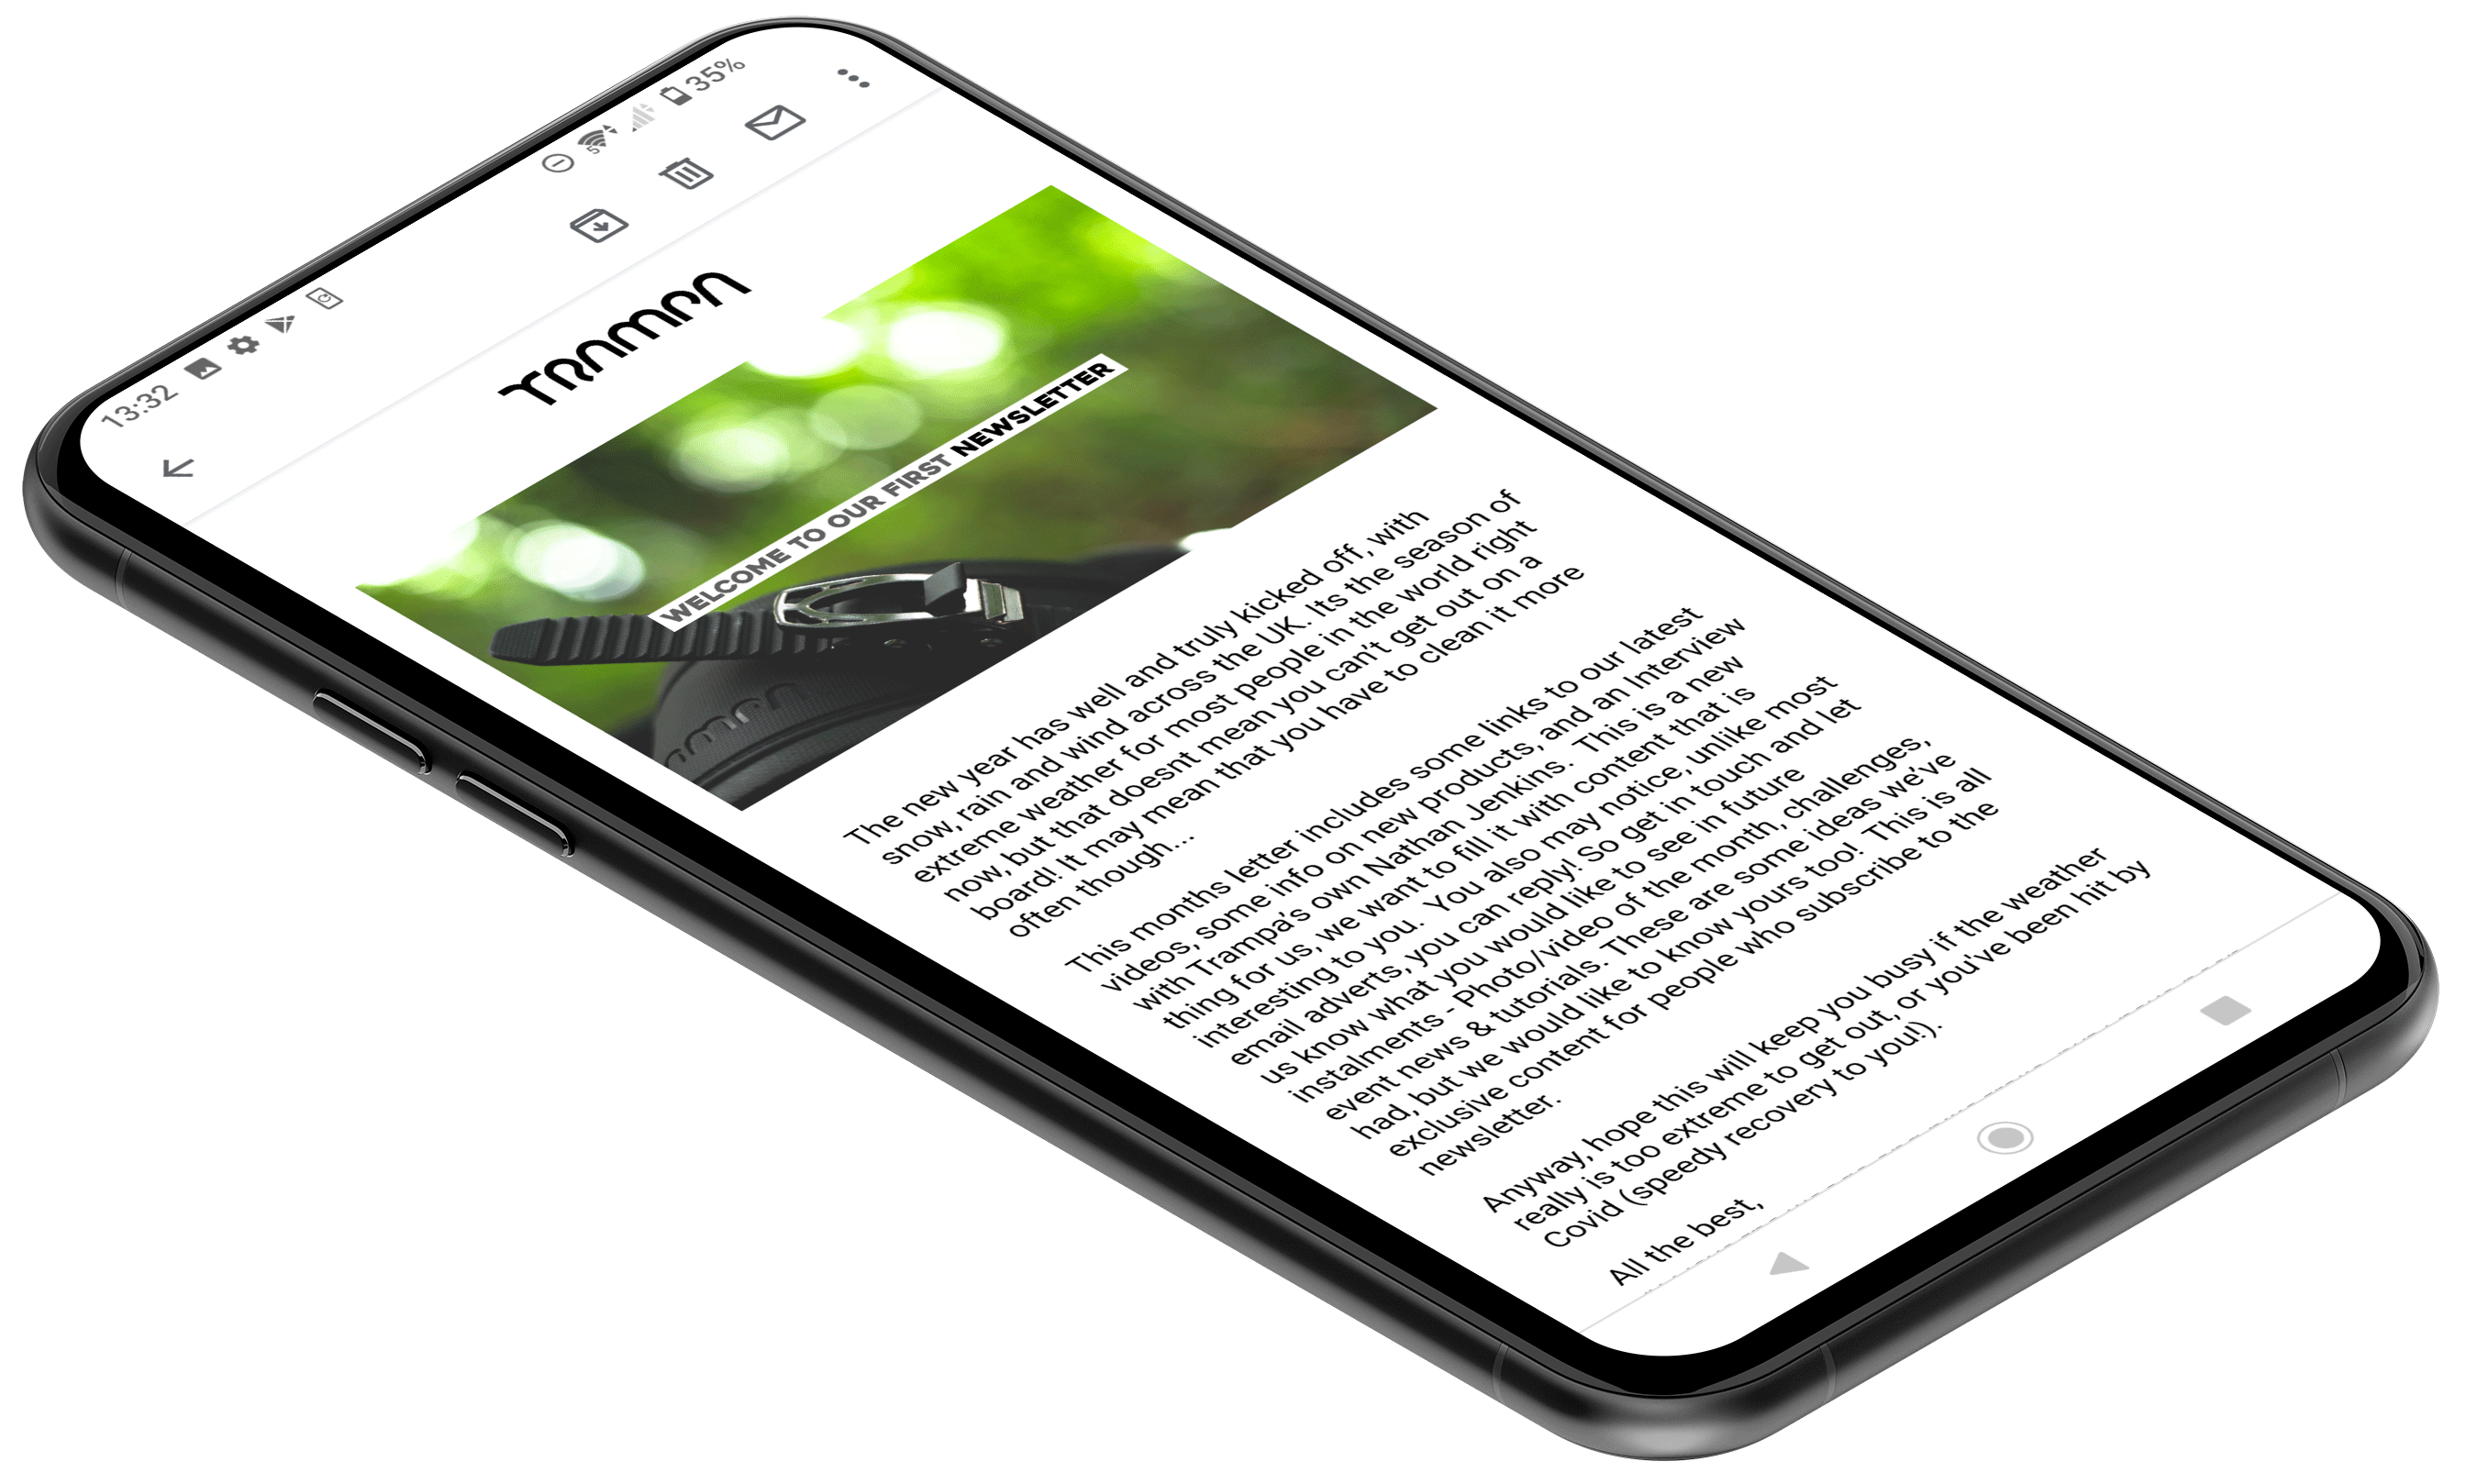 Newsletter email on phone